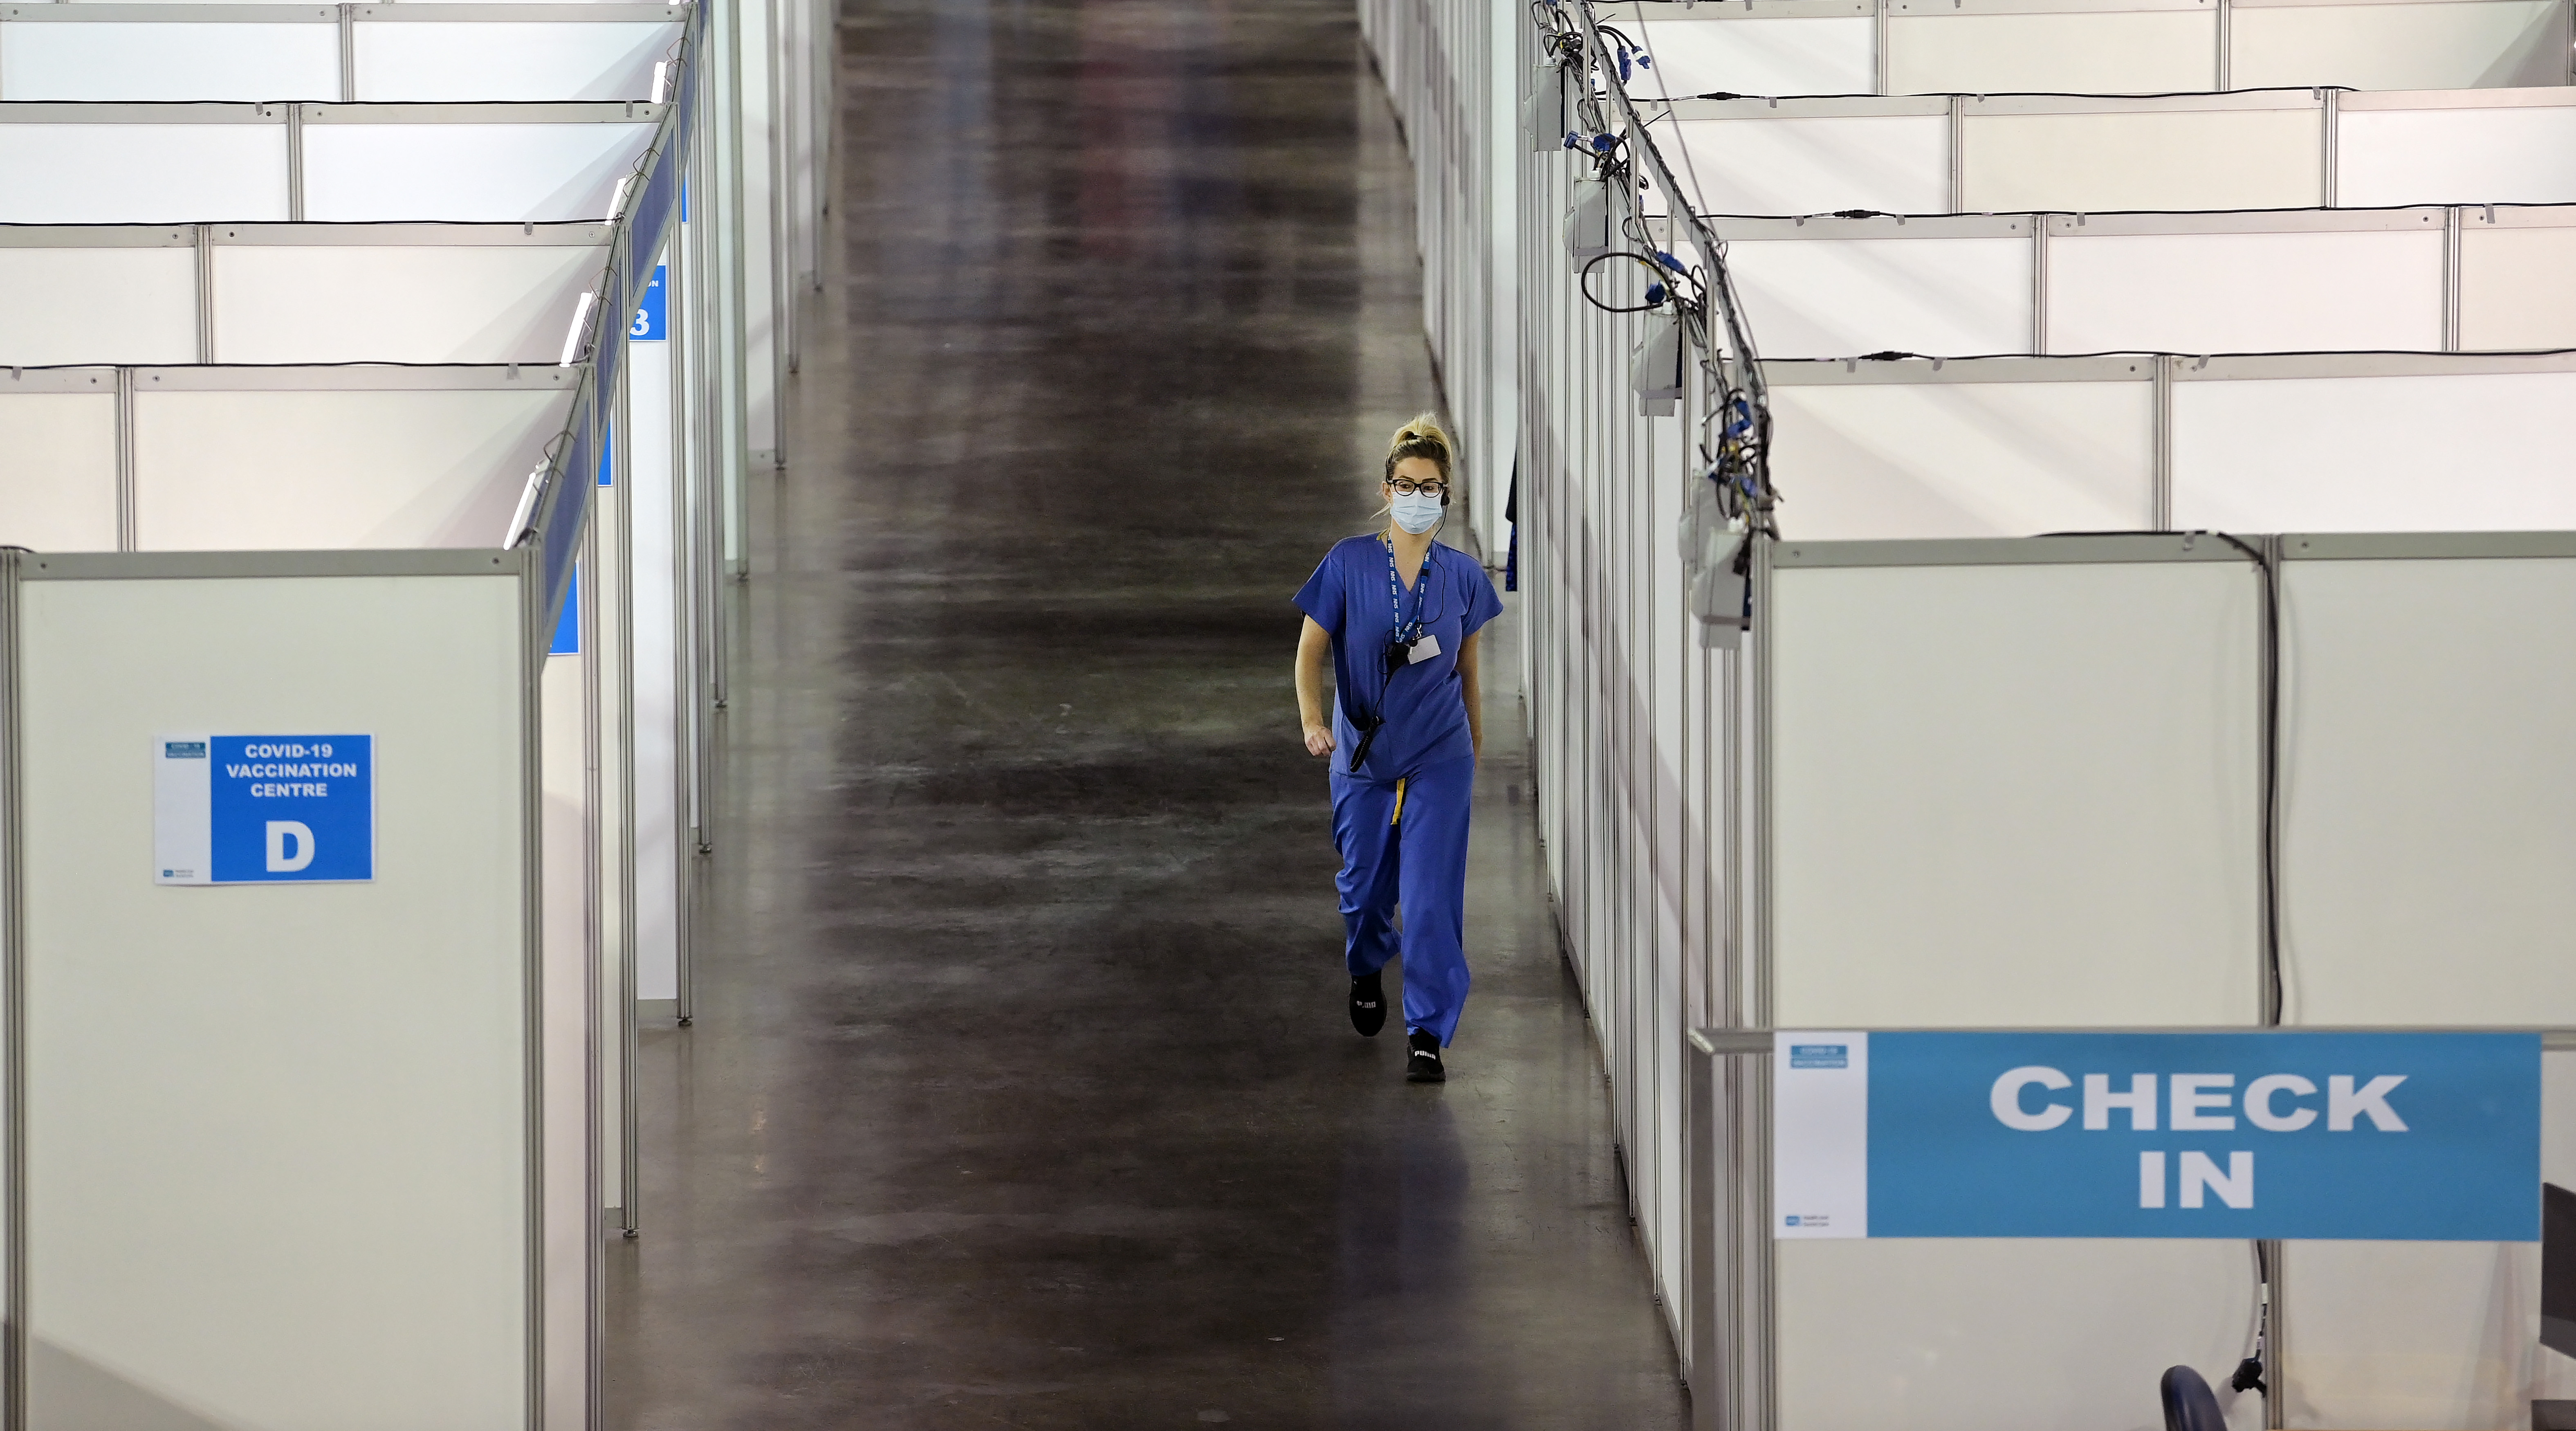 <p>BELFAST, NORTHERN IRELAND - MARCH 29: A vaccinator waits outside her cubicle as the provinces largest Covid-19 vaccination centre opens at the Odyssey SSE Arena on March 29, 2021 in Belfast, Northern Ireland. Northern Ireland, which has delivered at least one Covid-19 vaccine dose to about 38% of its overall population, slightly trails other UK nations in the inoculation campaign. But it's still significantly ahead of the Republic of Ireland, where just over 10 percent of its population has had the jab. (Photo by Charles McQuillan/Getty Images)</p>